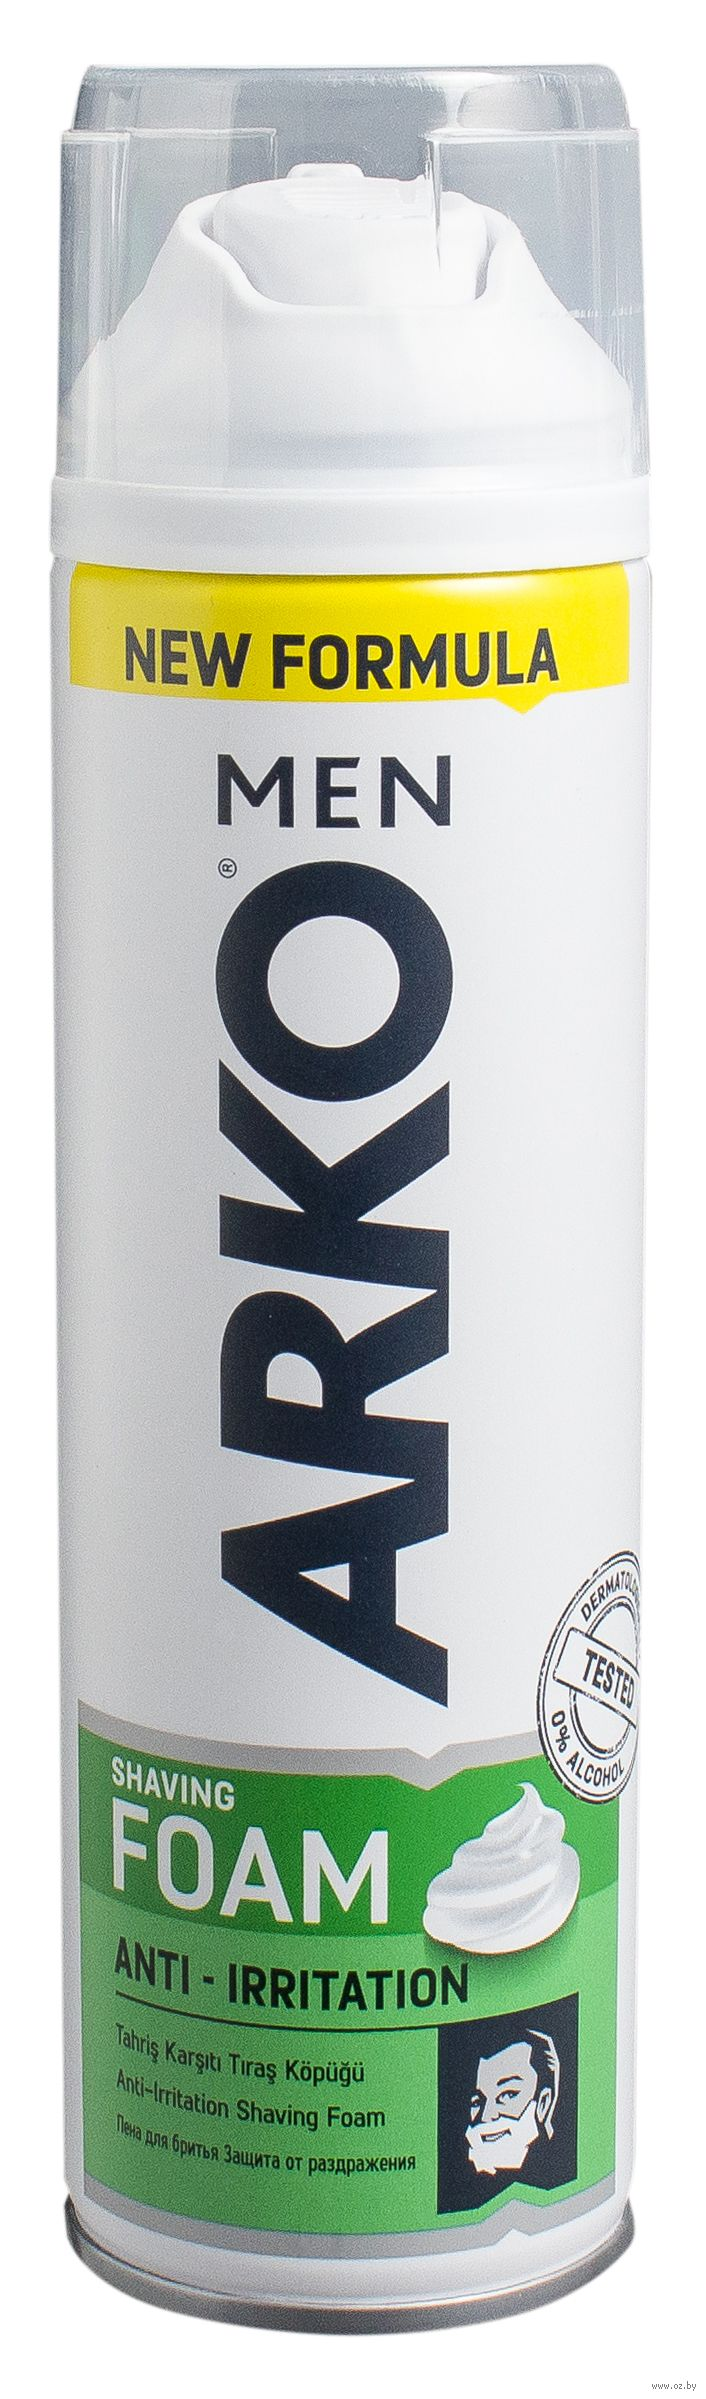 ARKO MEN пена для бритья Anti-Irritation 200 мл (камуфляж)